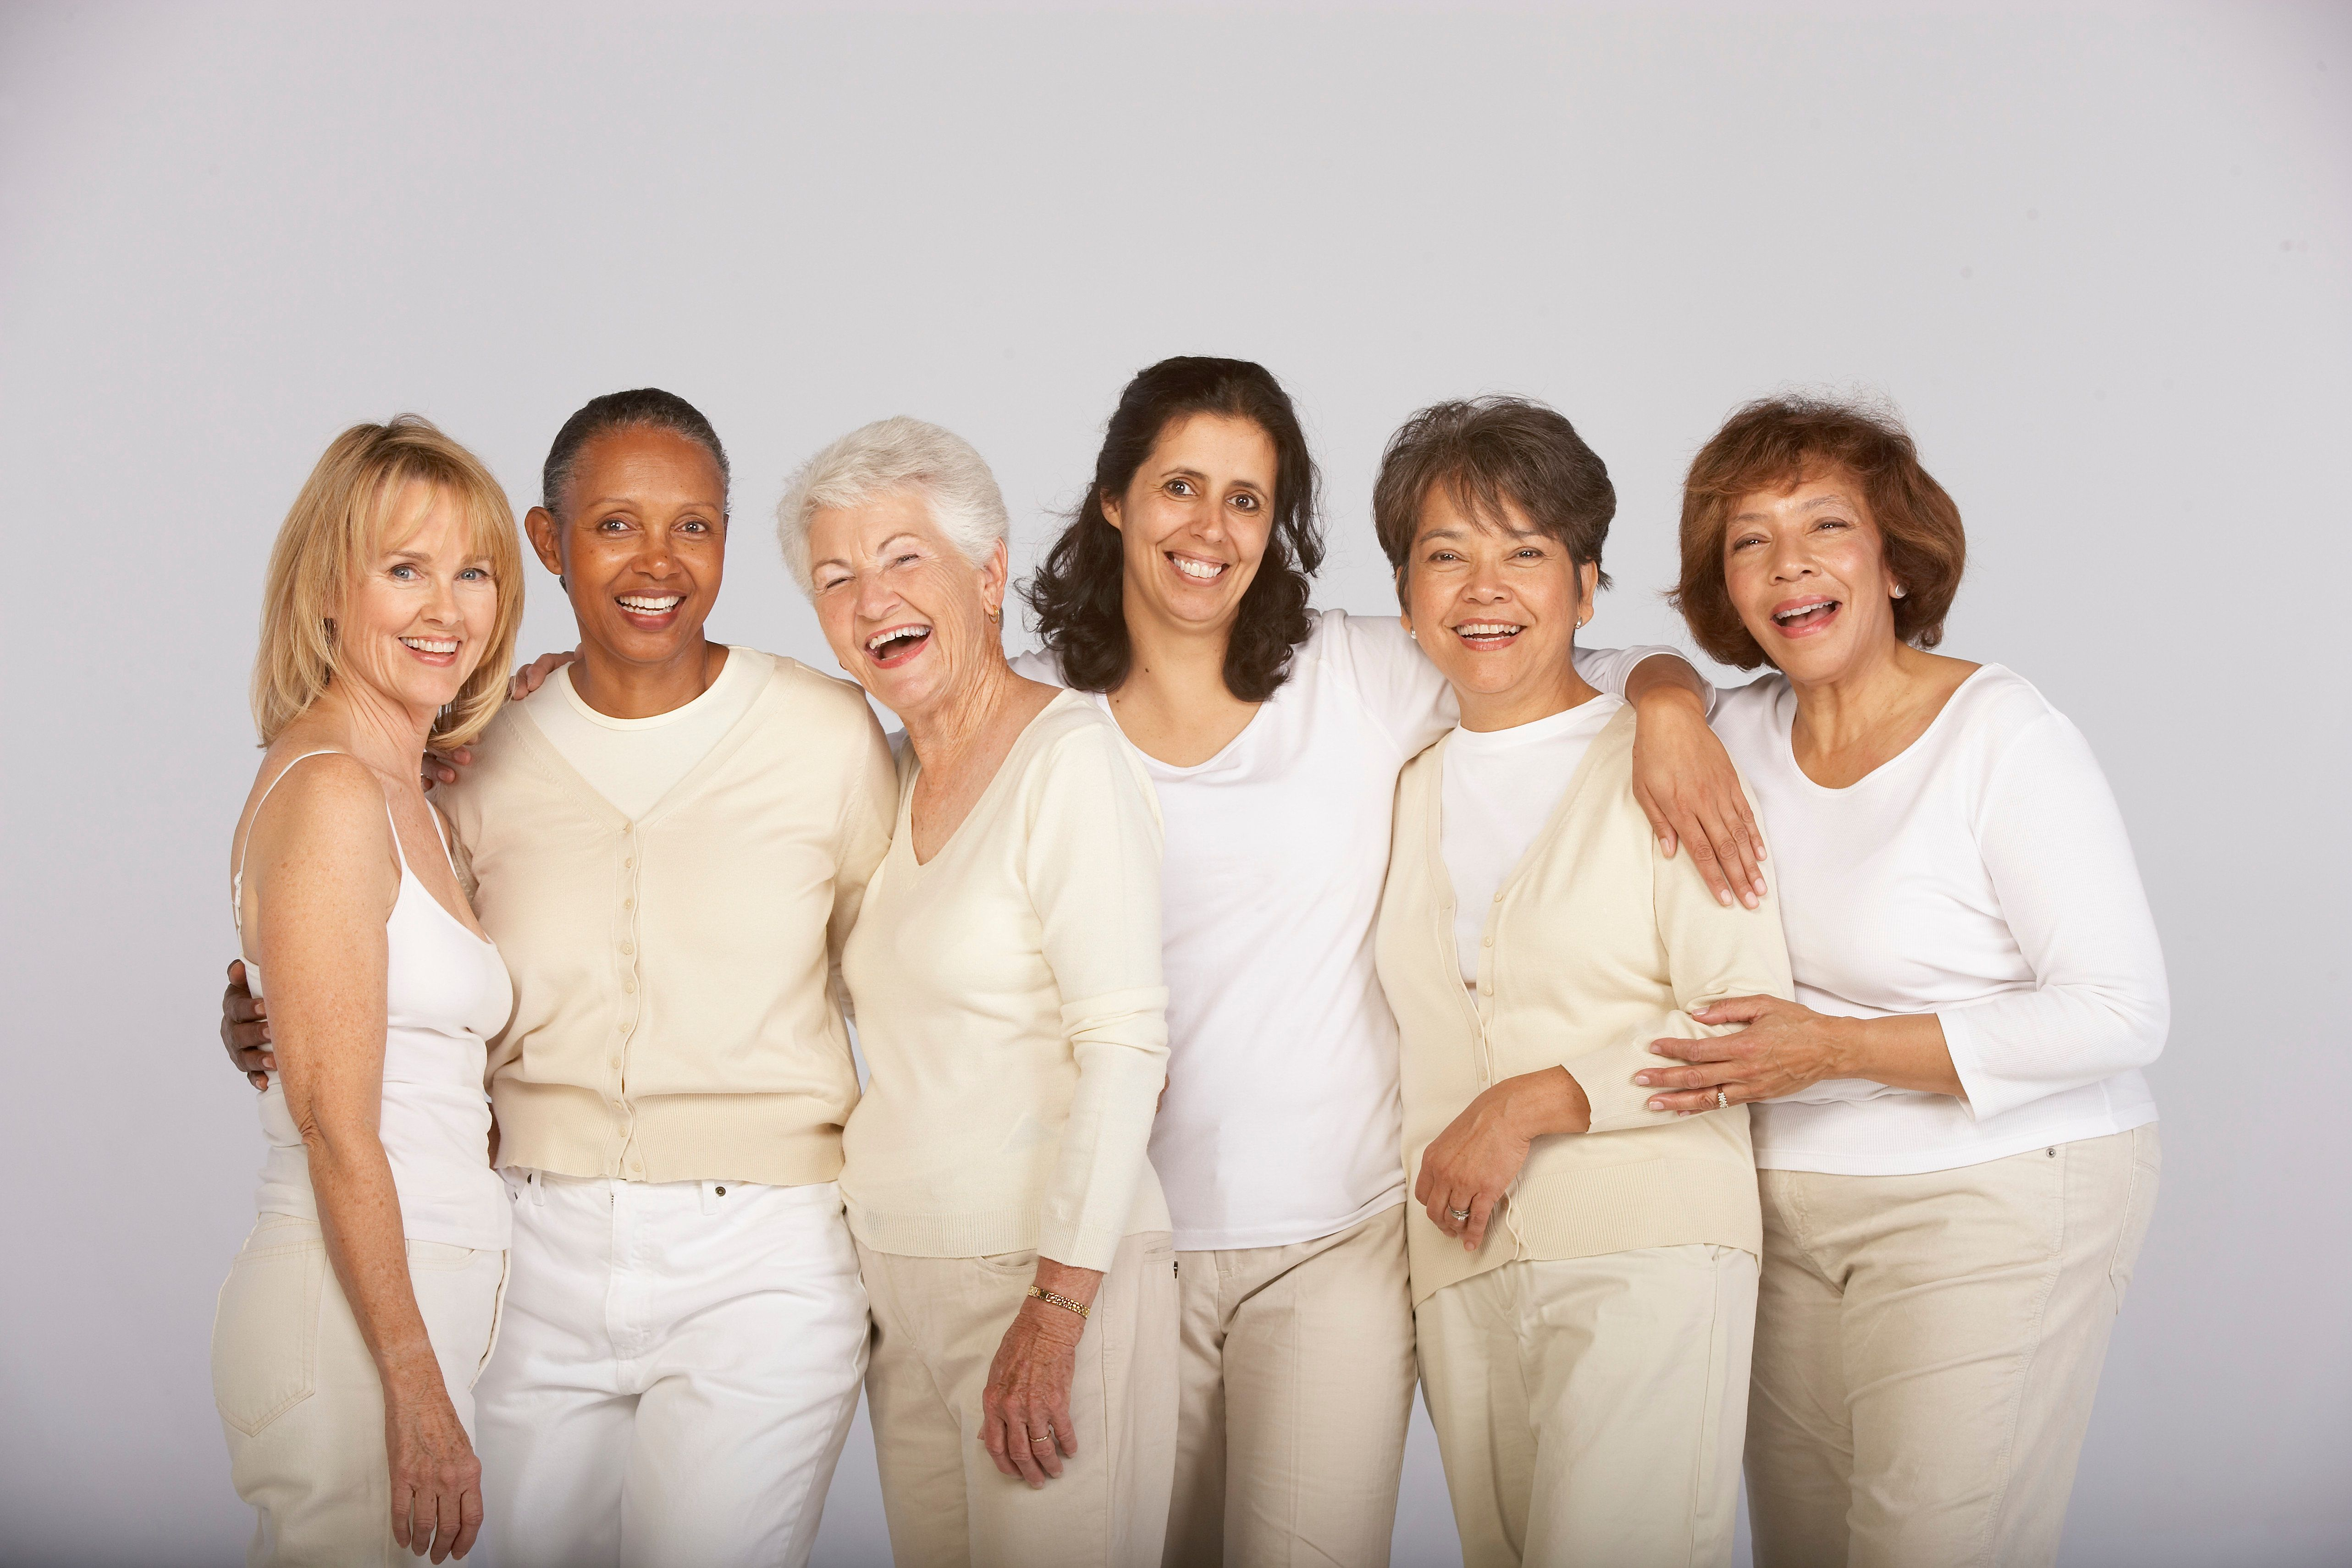 Group of mature and senior women, smiling, portrait